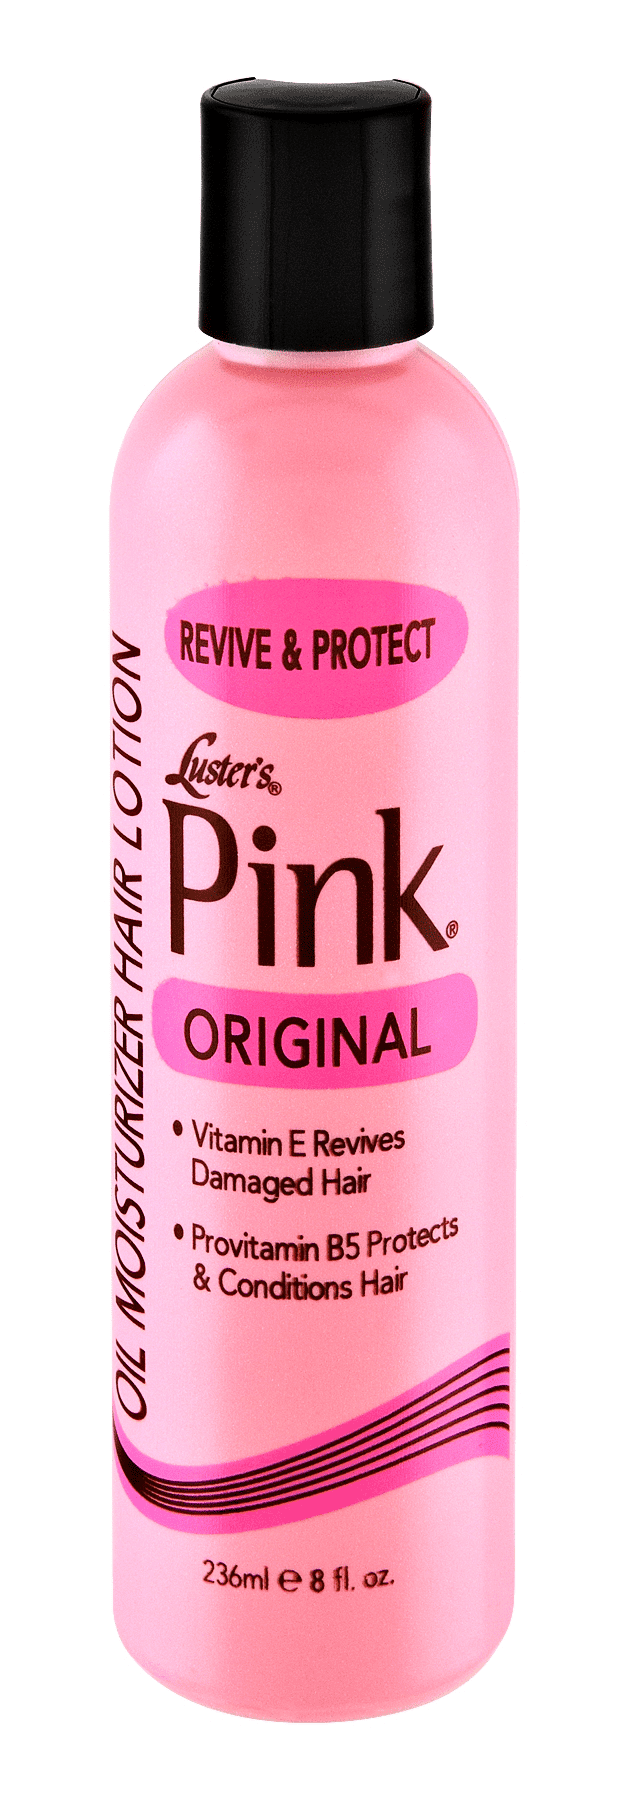 Pink Luster's Oil Moisturizer Hair Lotion, 8 oz.